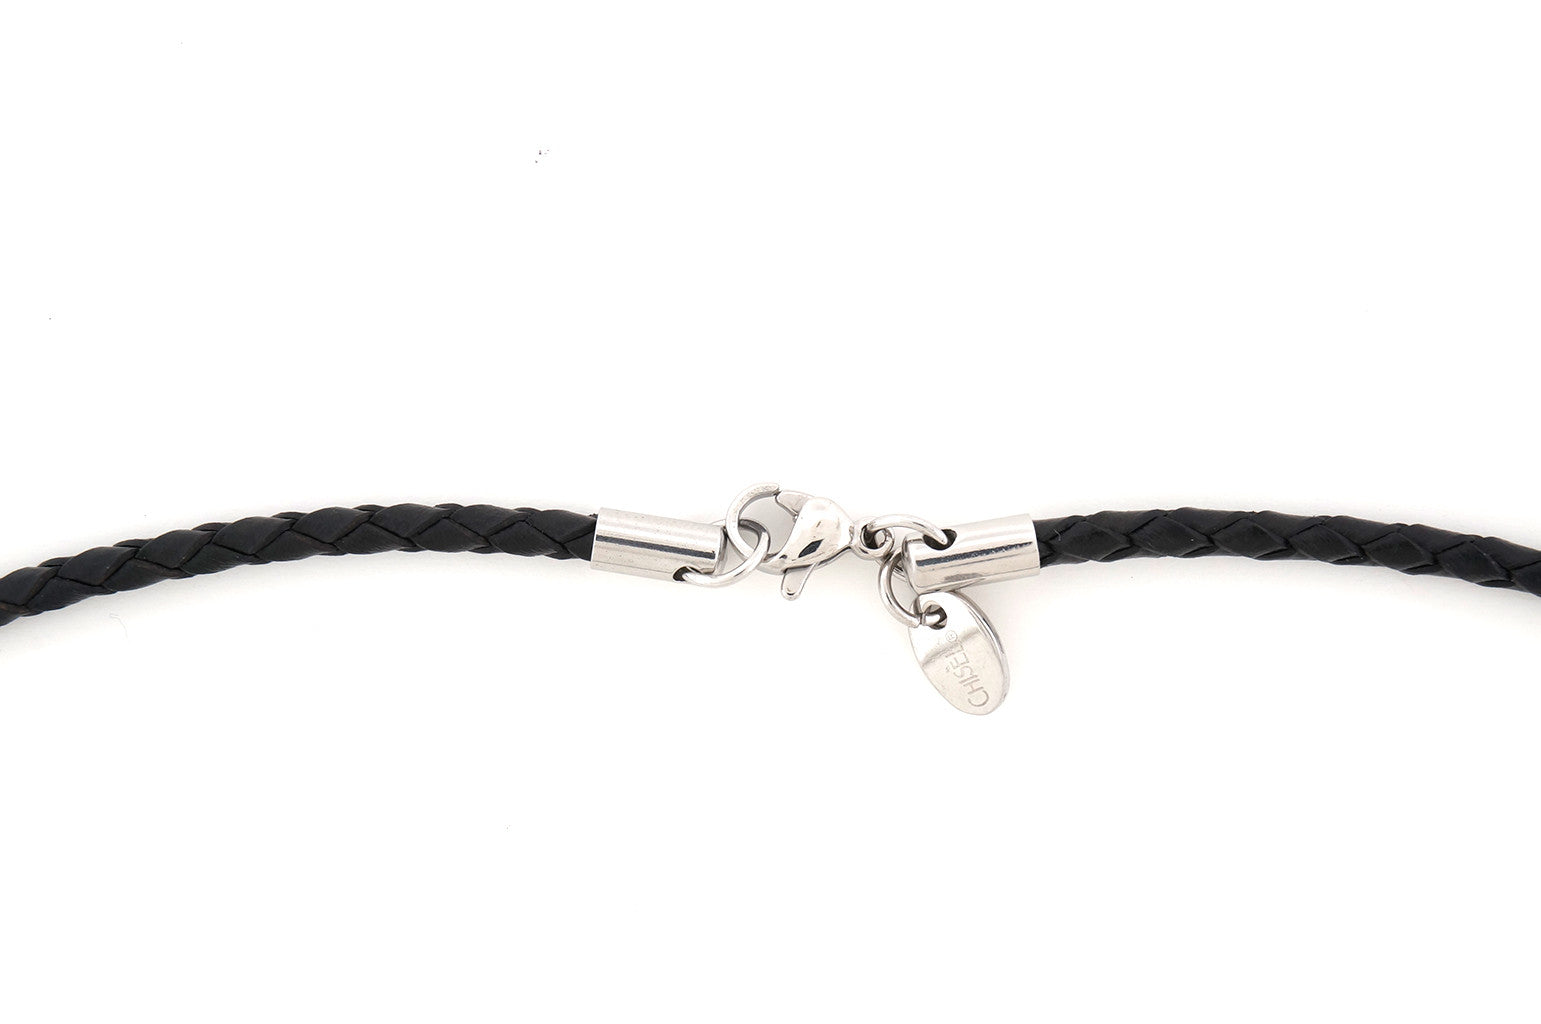 Chisel - Genuine Leather Weave Necklace w/ Stainless Steel Lobster Clasp - 3.0mm